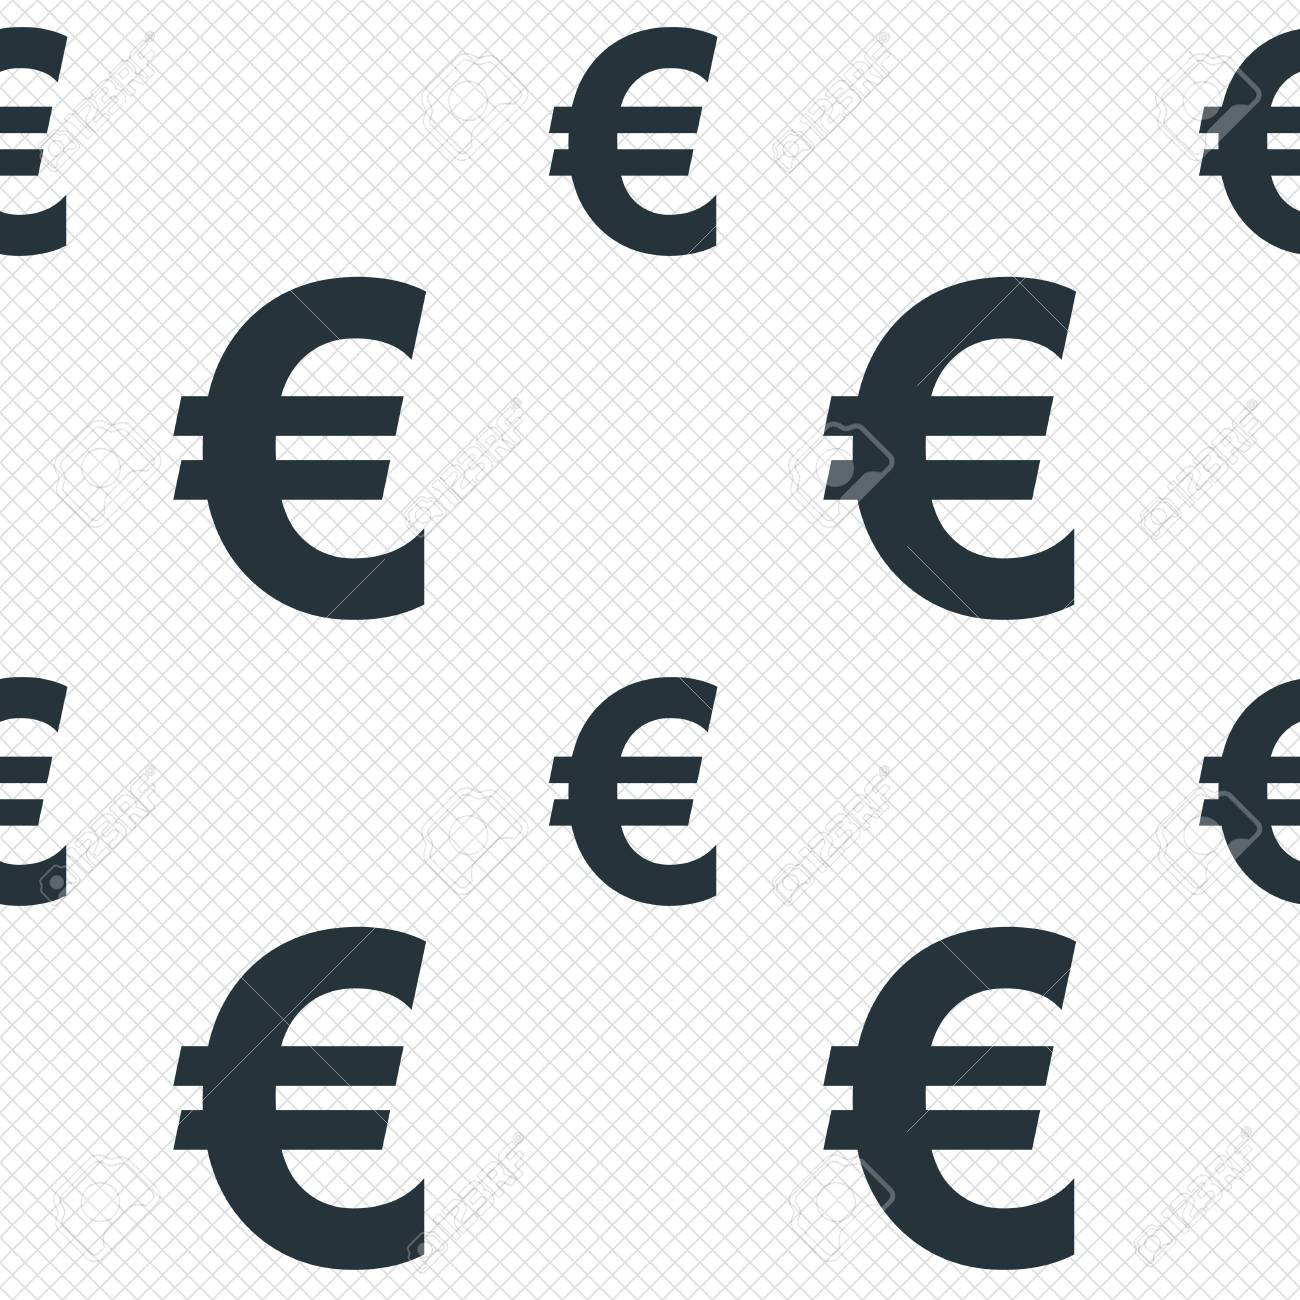 Aed currency symbol choice image symbol and sign ideas aed currency symbol choice image symbol and sign ideas world currency list with symbol image collections biocorpaavc